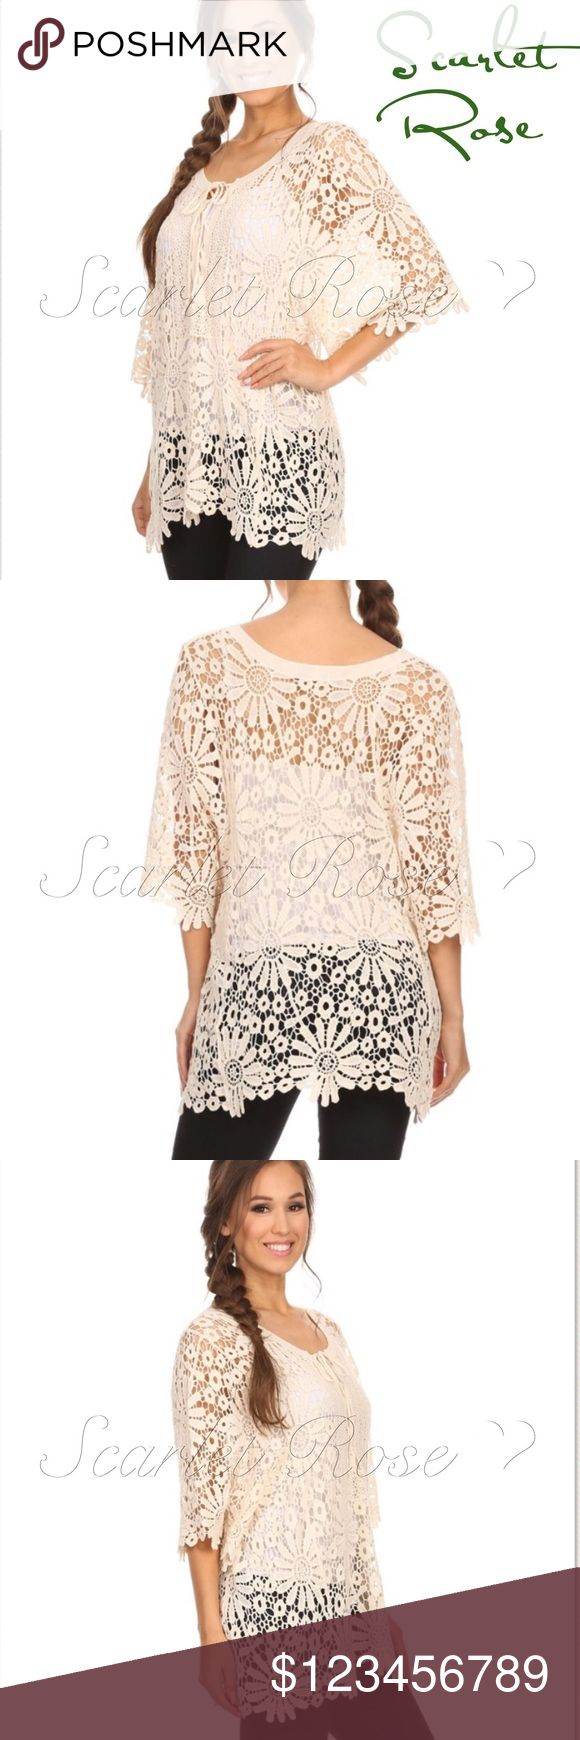 🌹Ivory Crochet Top or Tunic🌹 Ivory/Beige Crochet Top or Tunic featuring cut-out flower details throughout the patten and a criss cross tie at the front top. This is a MUST-HAVE item for your wardrobe. Pair with a pretty bralette or camisole under it with some jeans or leggings and you've got a rockin' outfit. Or throw over your bikini for a chic coverup. PRICE IS FIRM UNLESS BUNDLED.. These are OSFM, but I recommend sizes 2 - 8. Happy Poshing! 💕💕 Scarlet Rose Boutique Tops Tunics